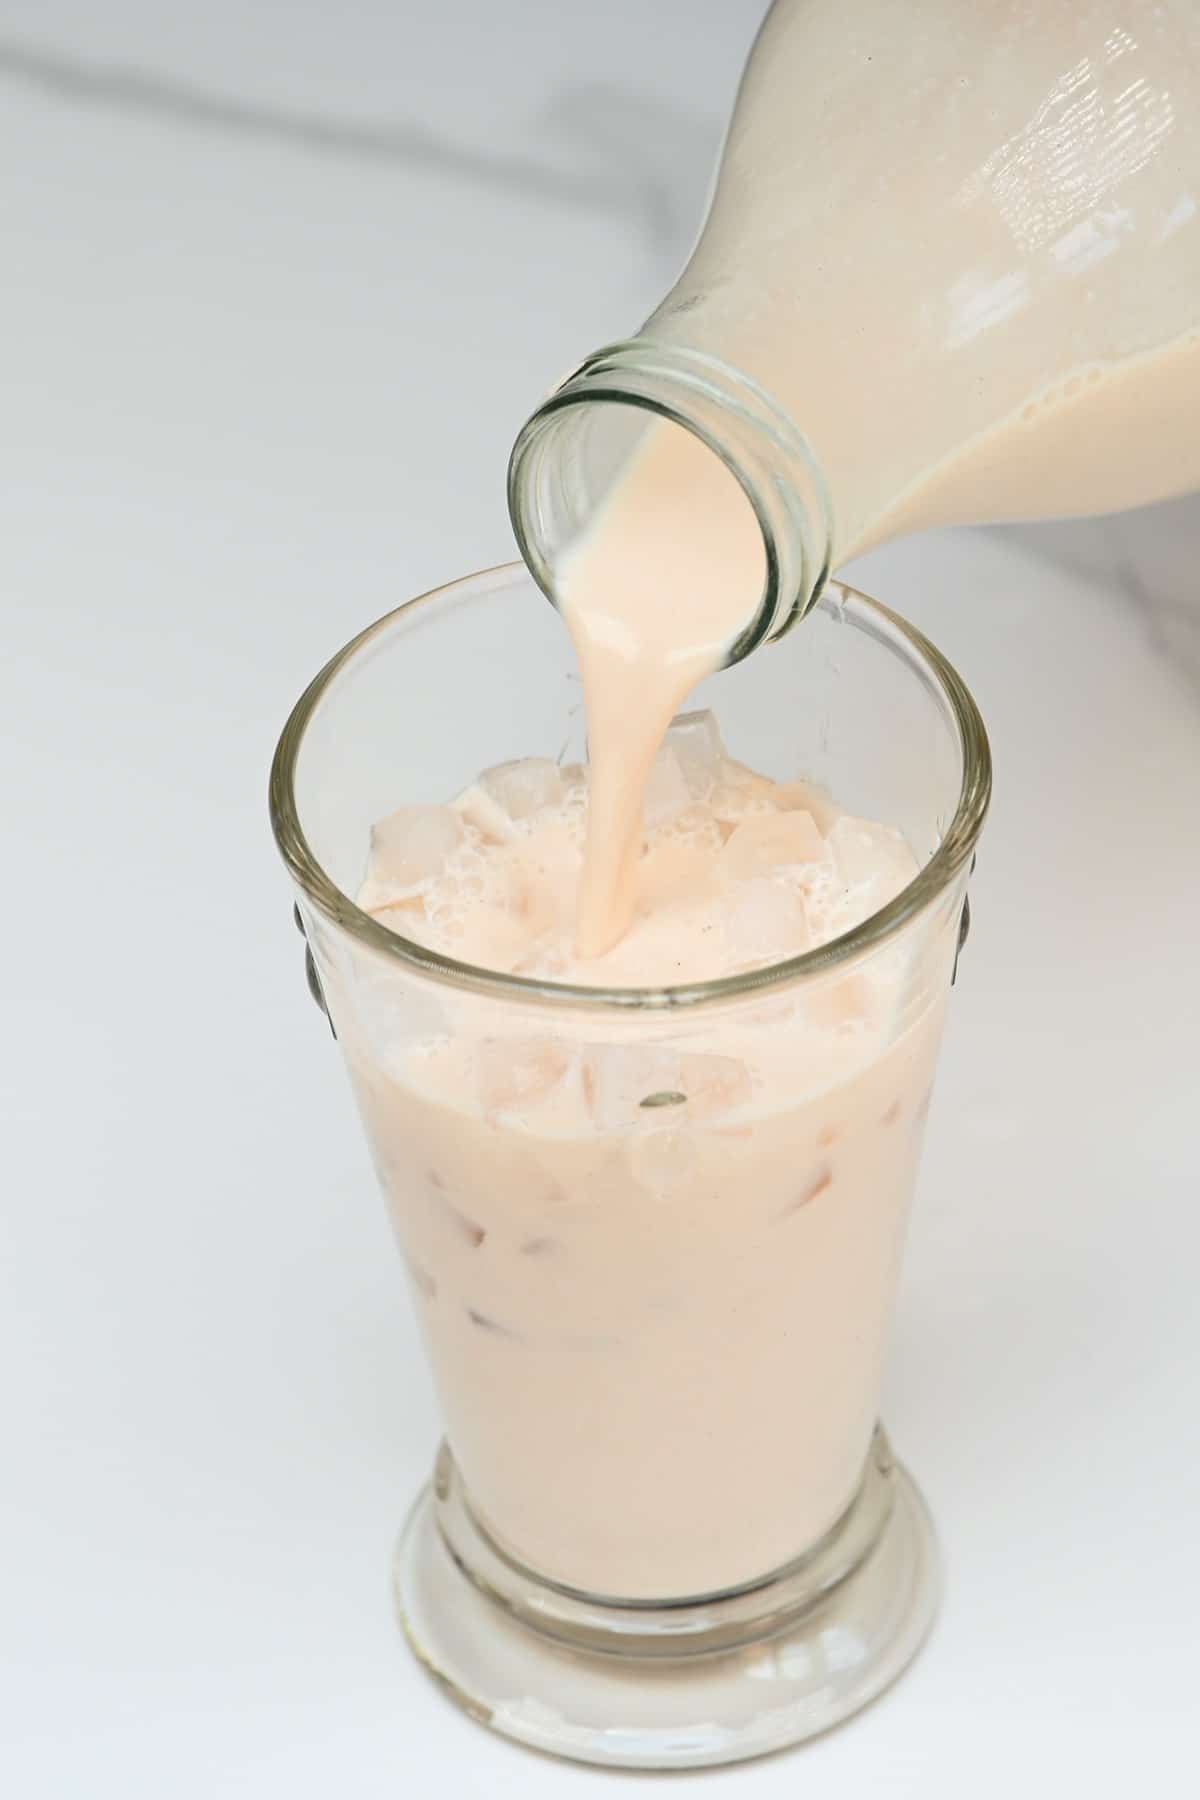 Pouring horchata in a glass